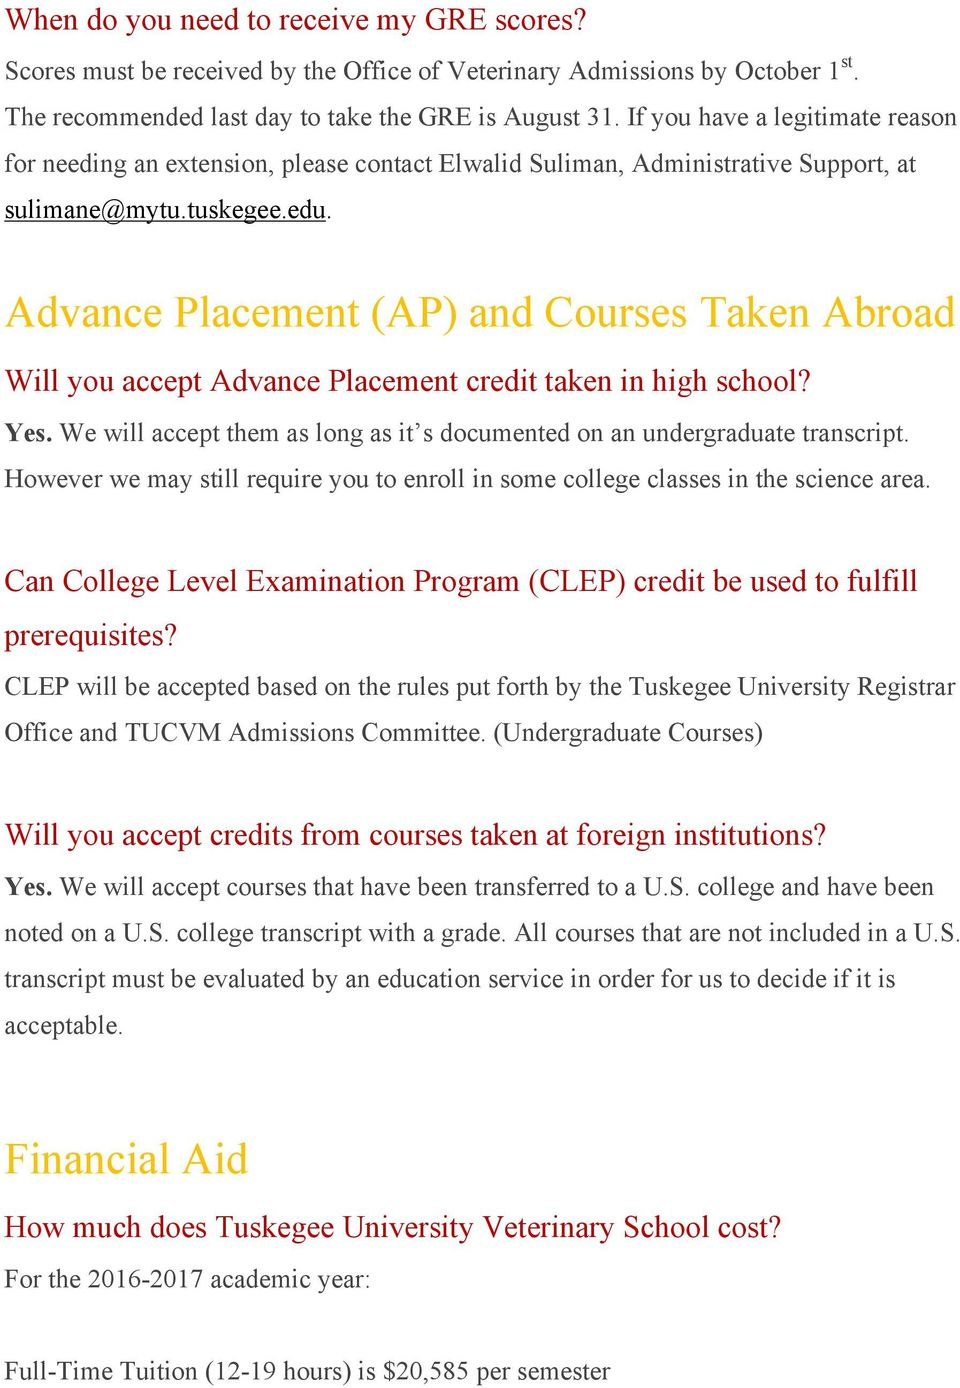 Advance Placement (AP) and Courses Taken Abroad Will you accept Advance Placement credit taken in high school? Yes. We will accept them as long as it s documented on an undergraduate transcript.